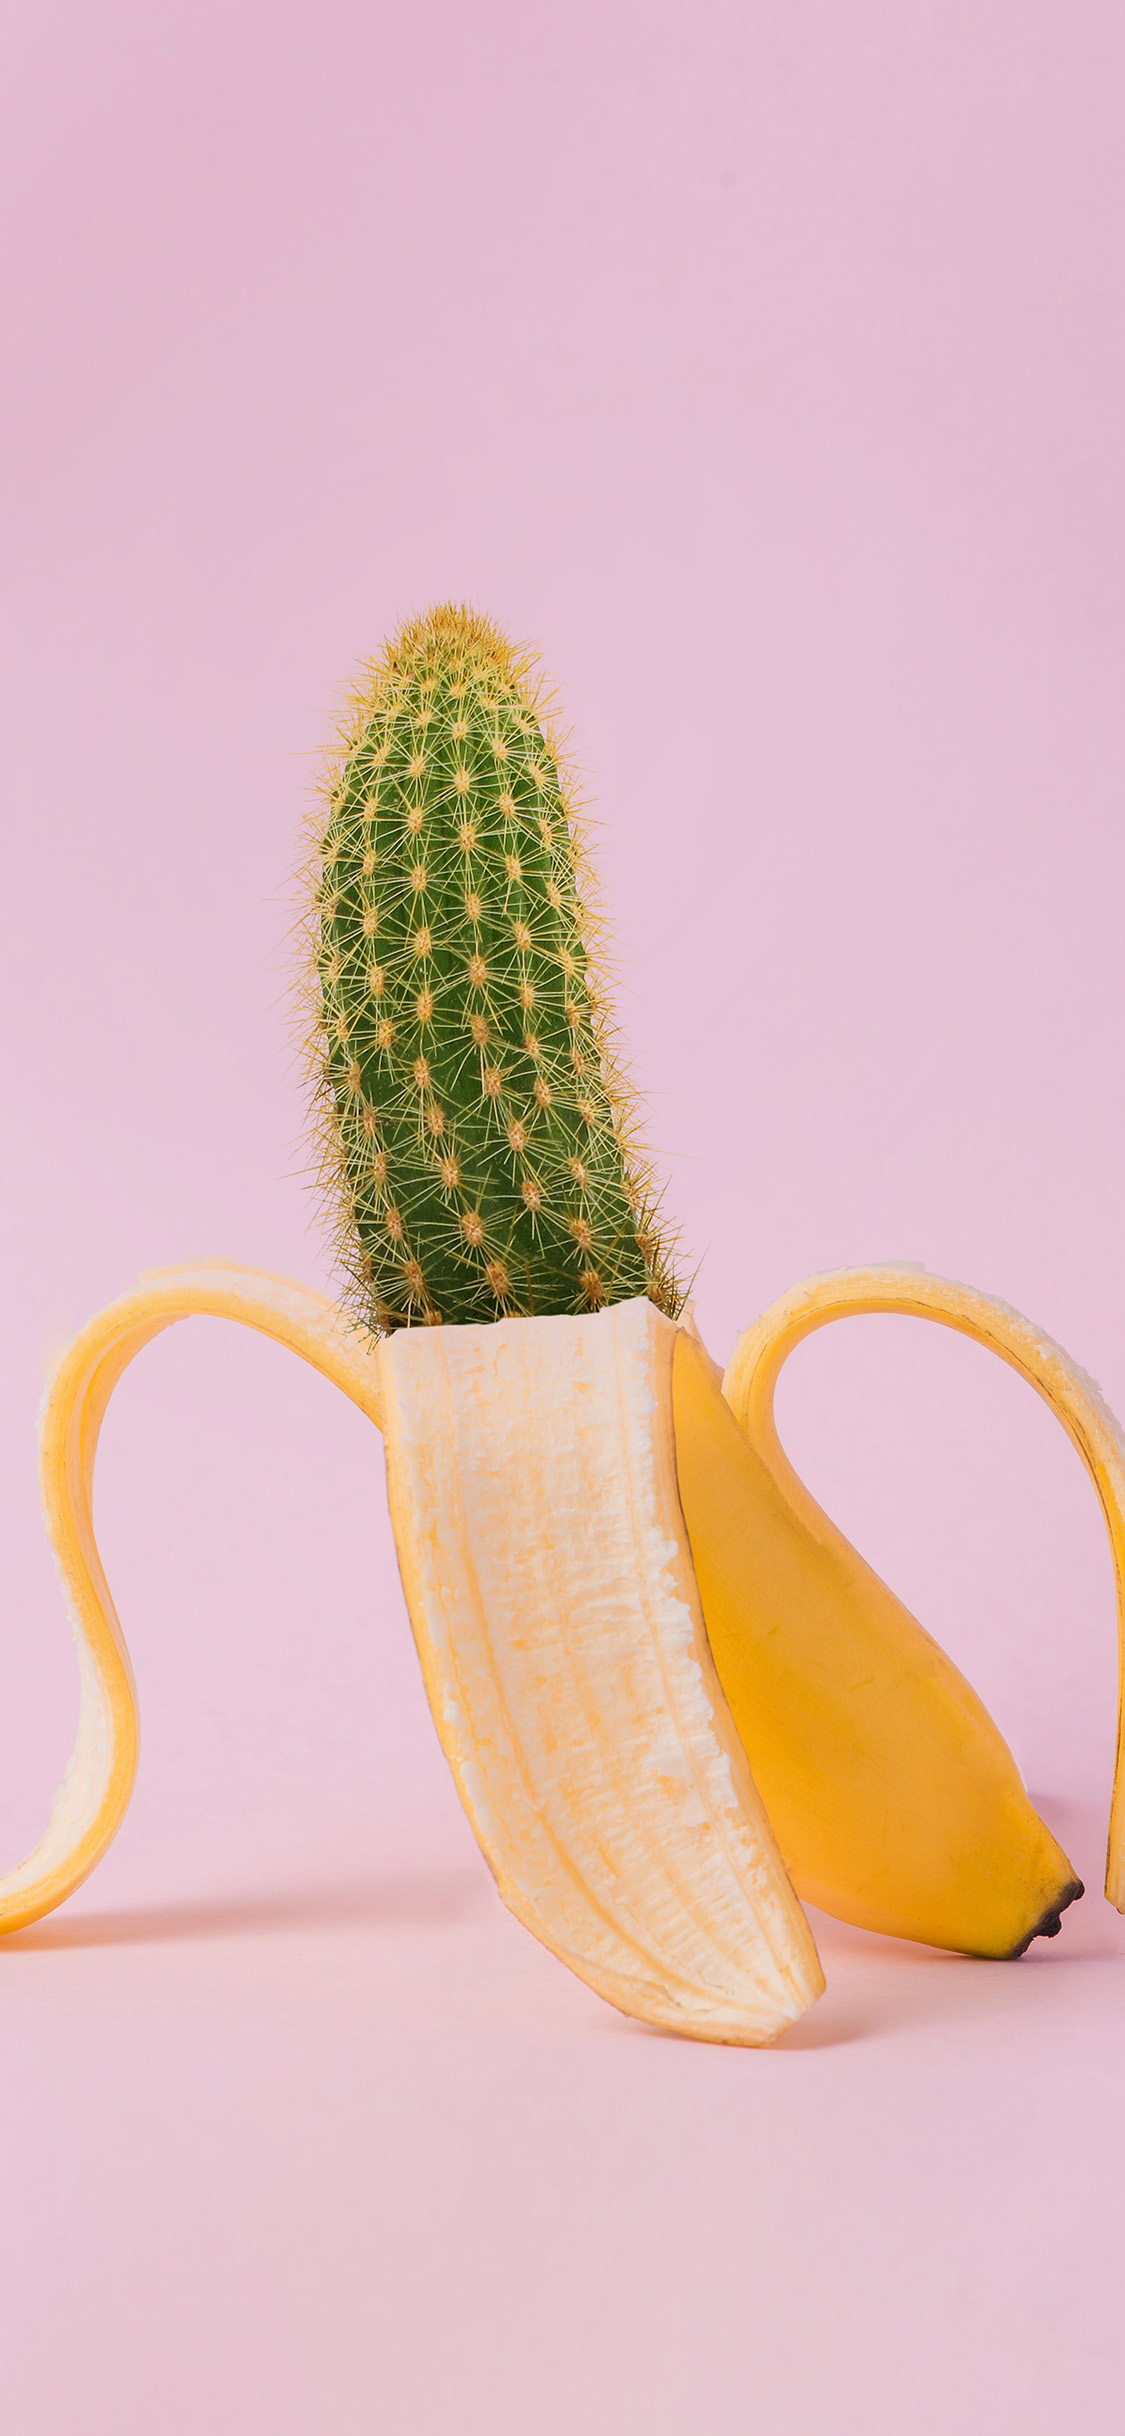 iPhonexpapers.com-Apple-iPhone-wallpaper-bj86-art-banana-cactus